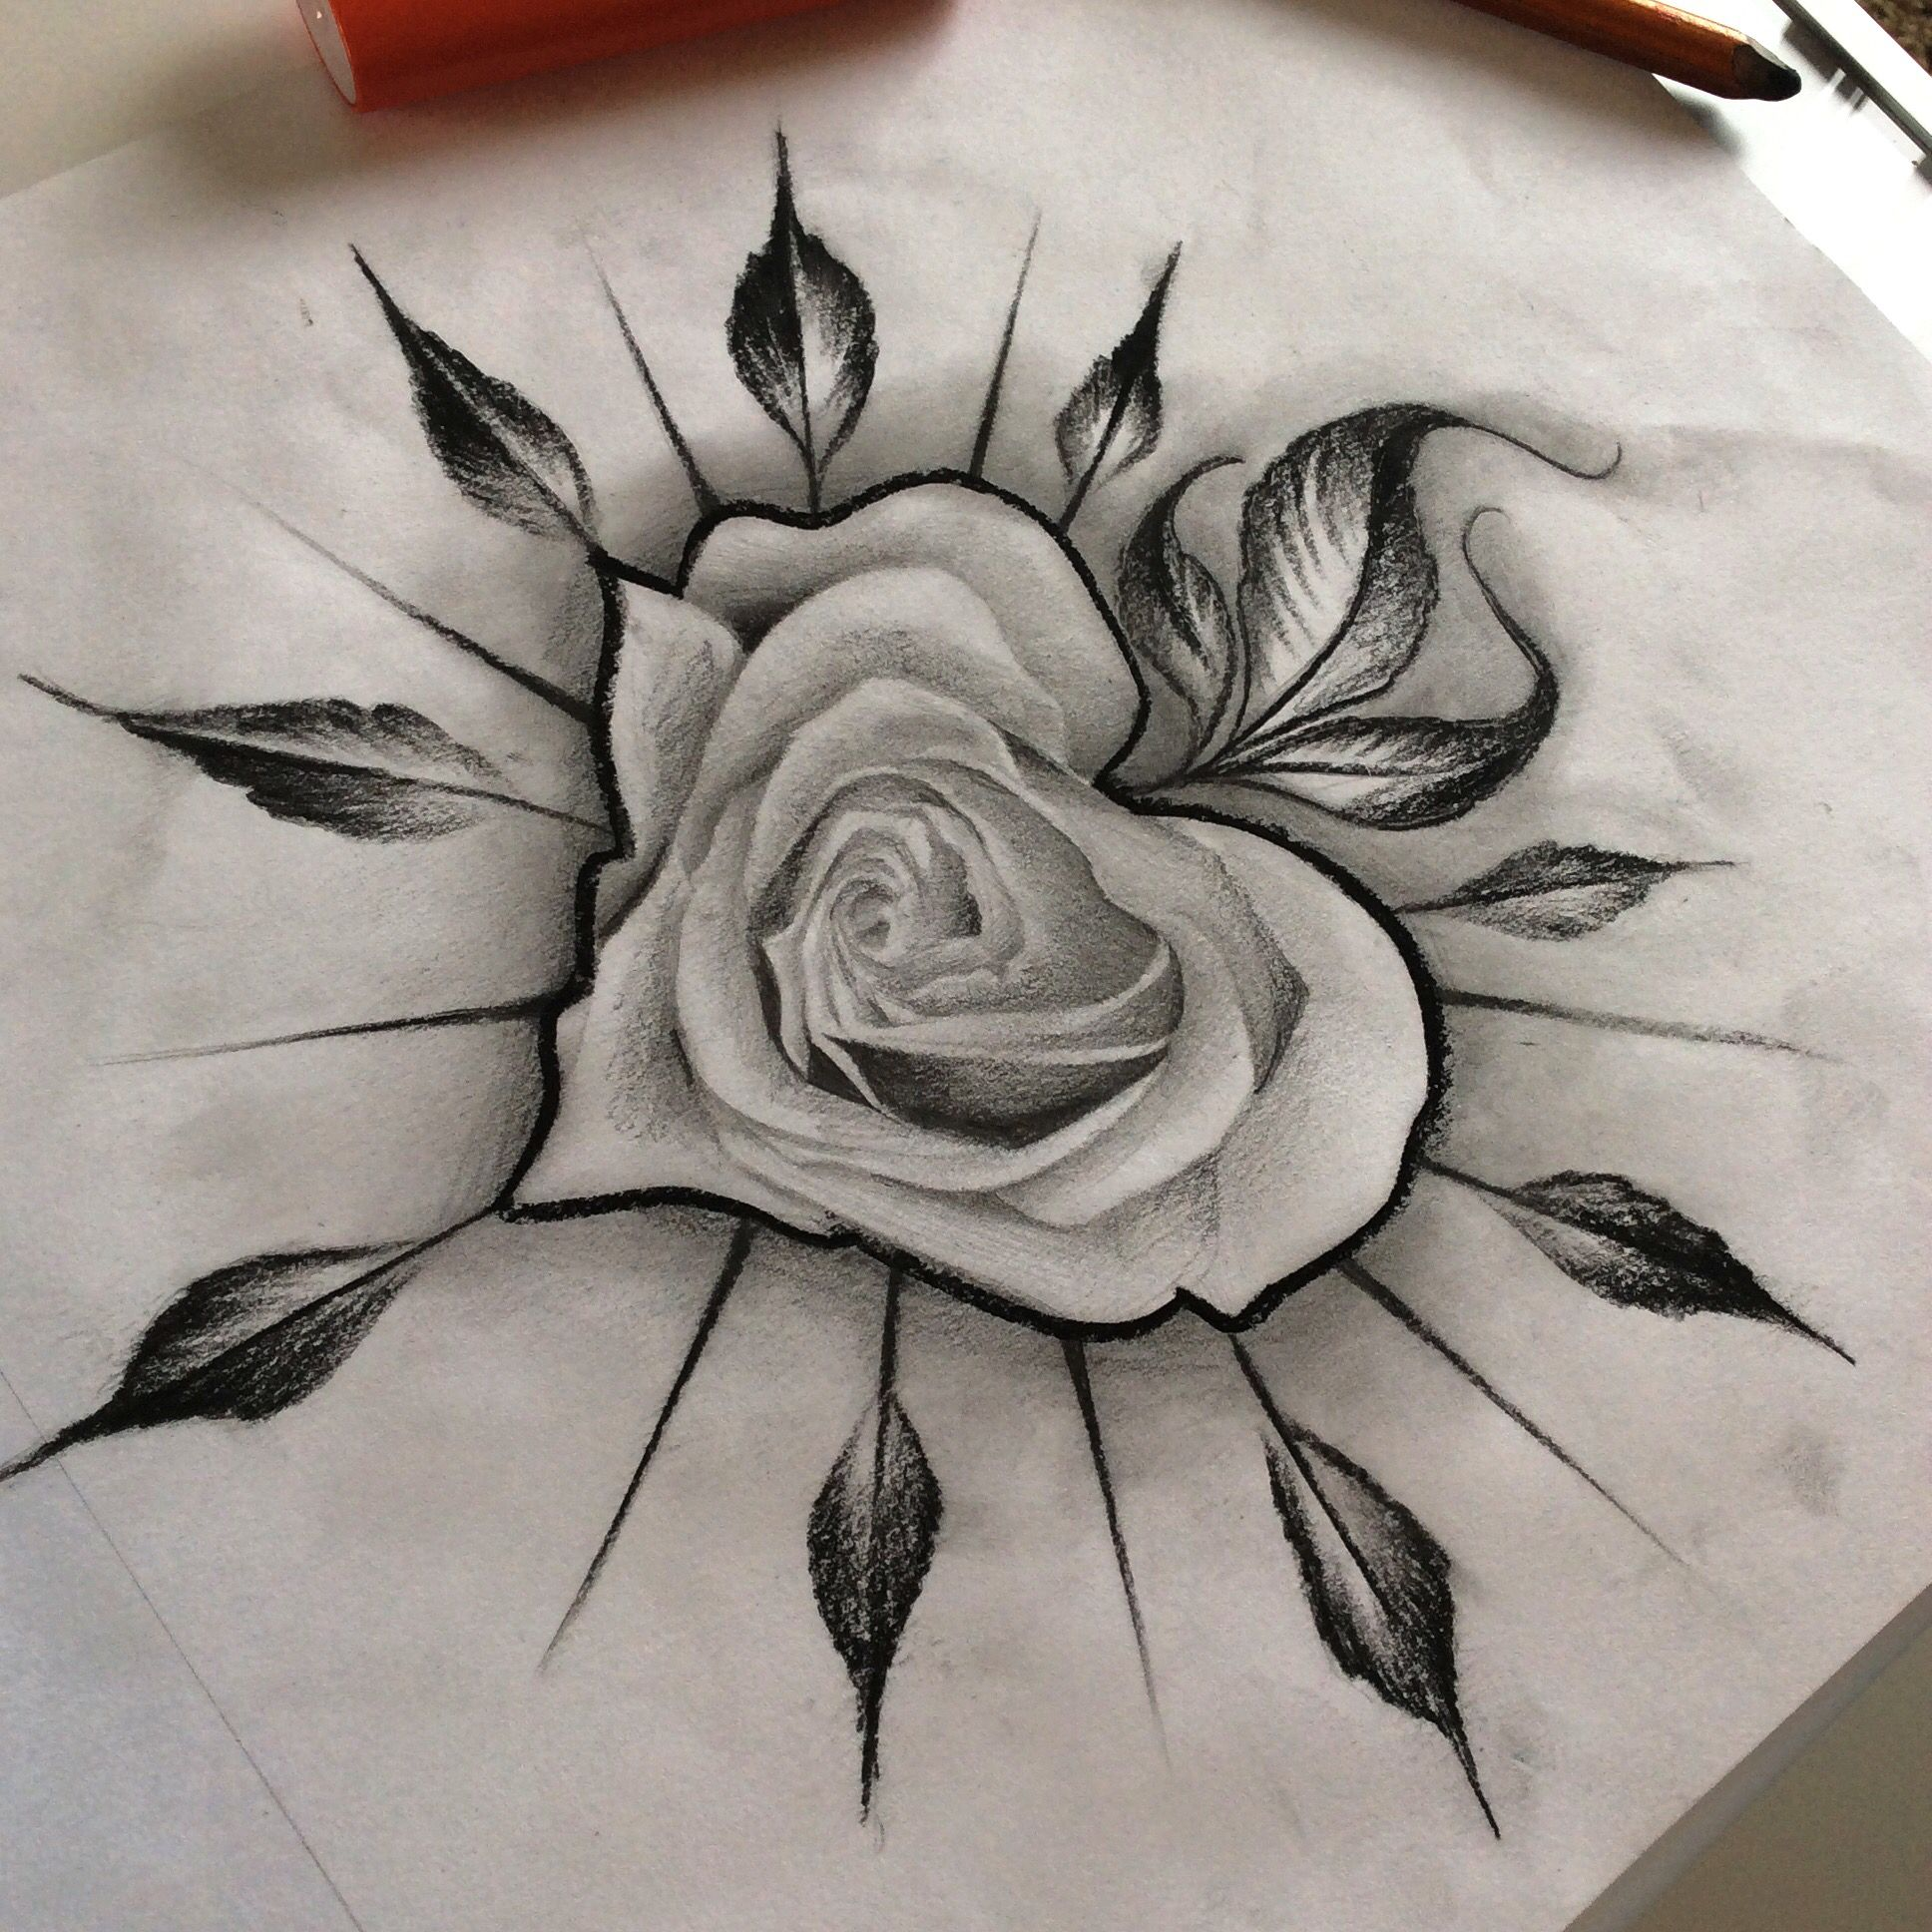 Roselle tattoo co. | My drawings and paintings | Flower ... | 1936 x 1936 jpeg 2410kB